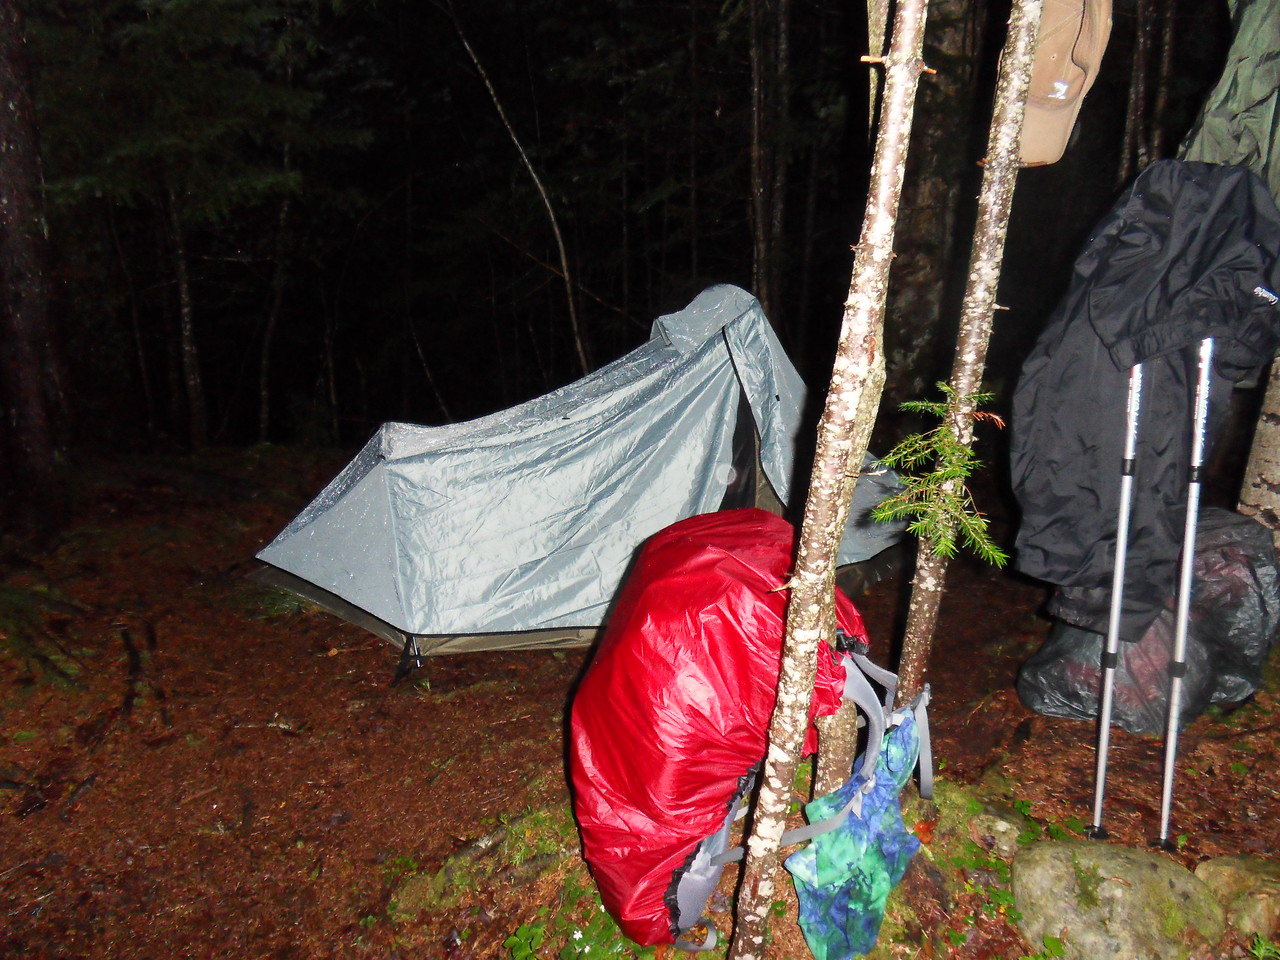 Lean-to's were full so we set up the tent in the rain (at 10pm), ate some dinner and went to bed. We got a big day ahead of us...